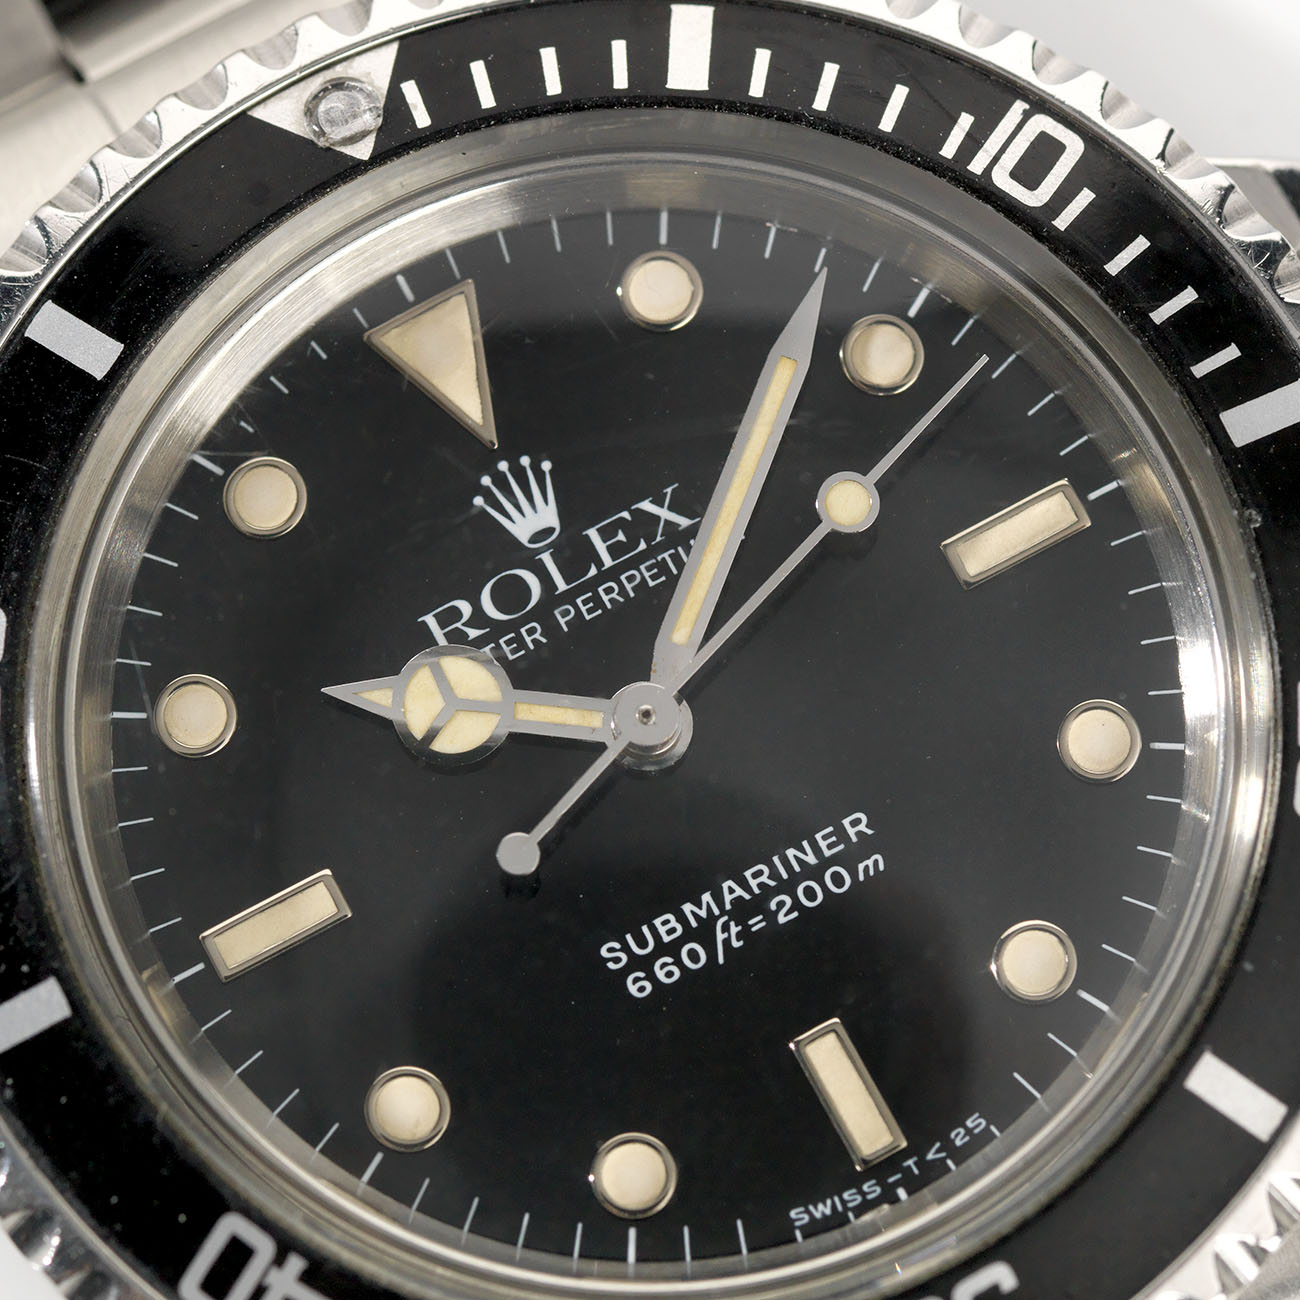 Vintage Rolex 5513 Submariner Love - Article at Bulang and Sons -